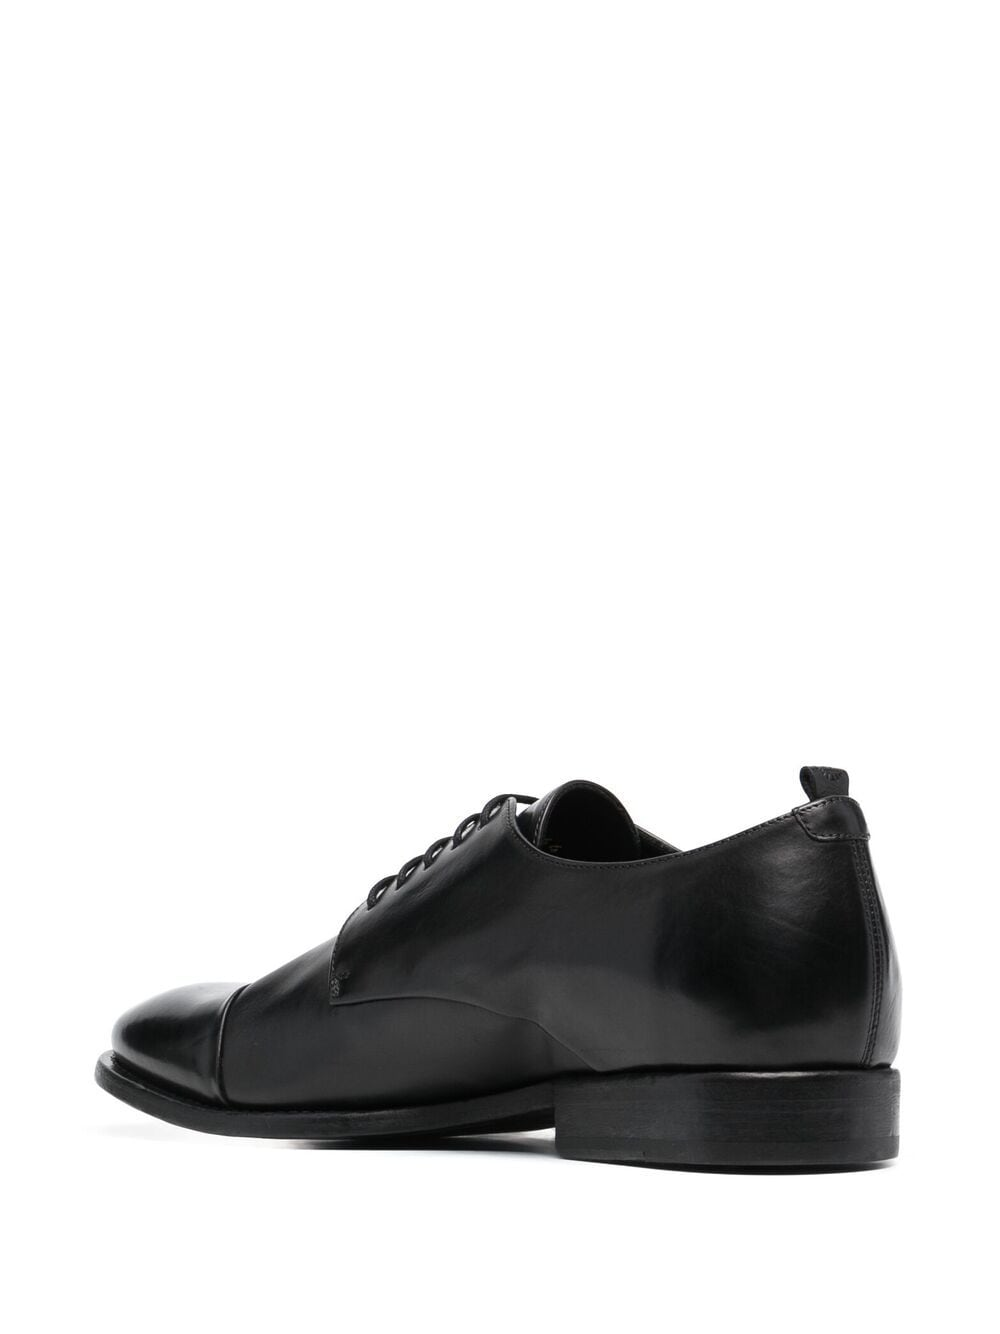 Leather shiny lace up shoes man BUTTERO | Laced Shoes | B7344DIV-UG01